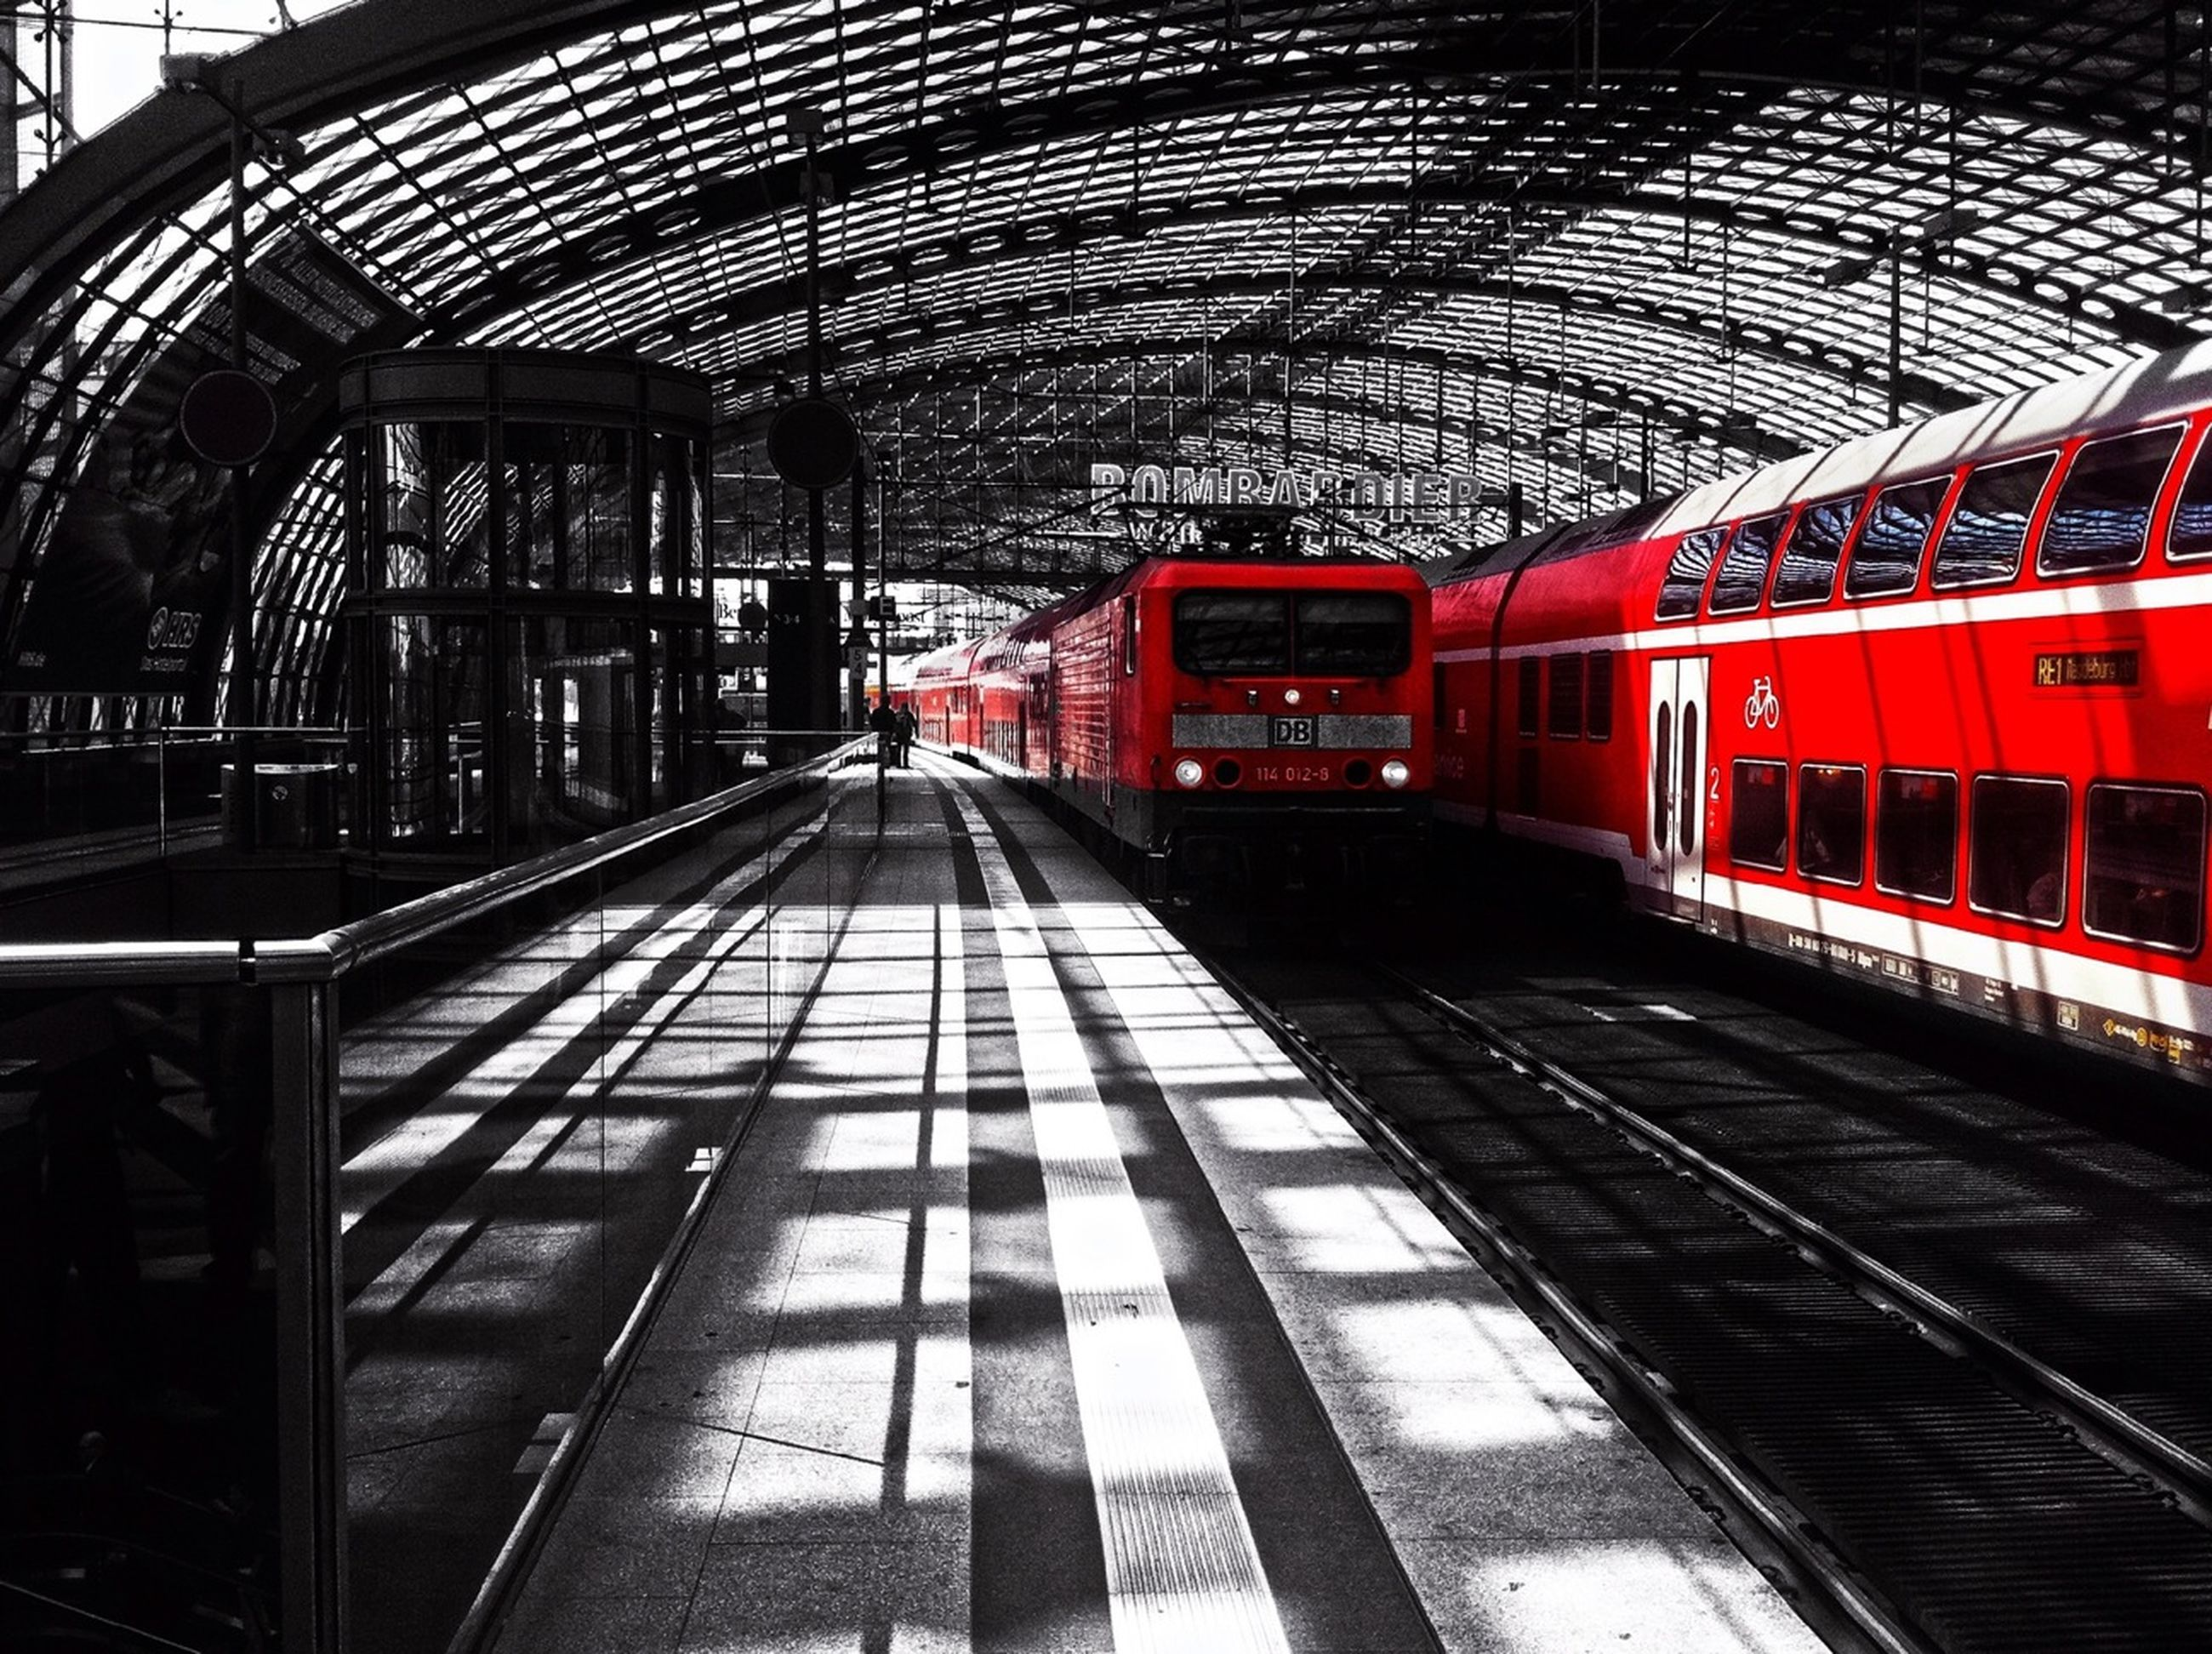 railroad track, rail transportation, railroad station platform, railroad station, public transportation, transportation, indoors, architecture, built structure, train - vehicle, travel, the way forward, diminishing perspective, incidental people, passenger train, ceiling, metal, station, red, subway station